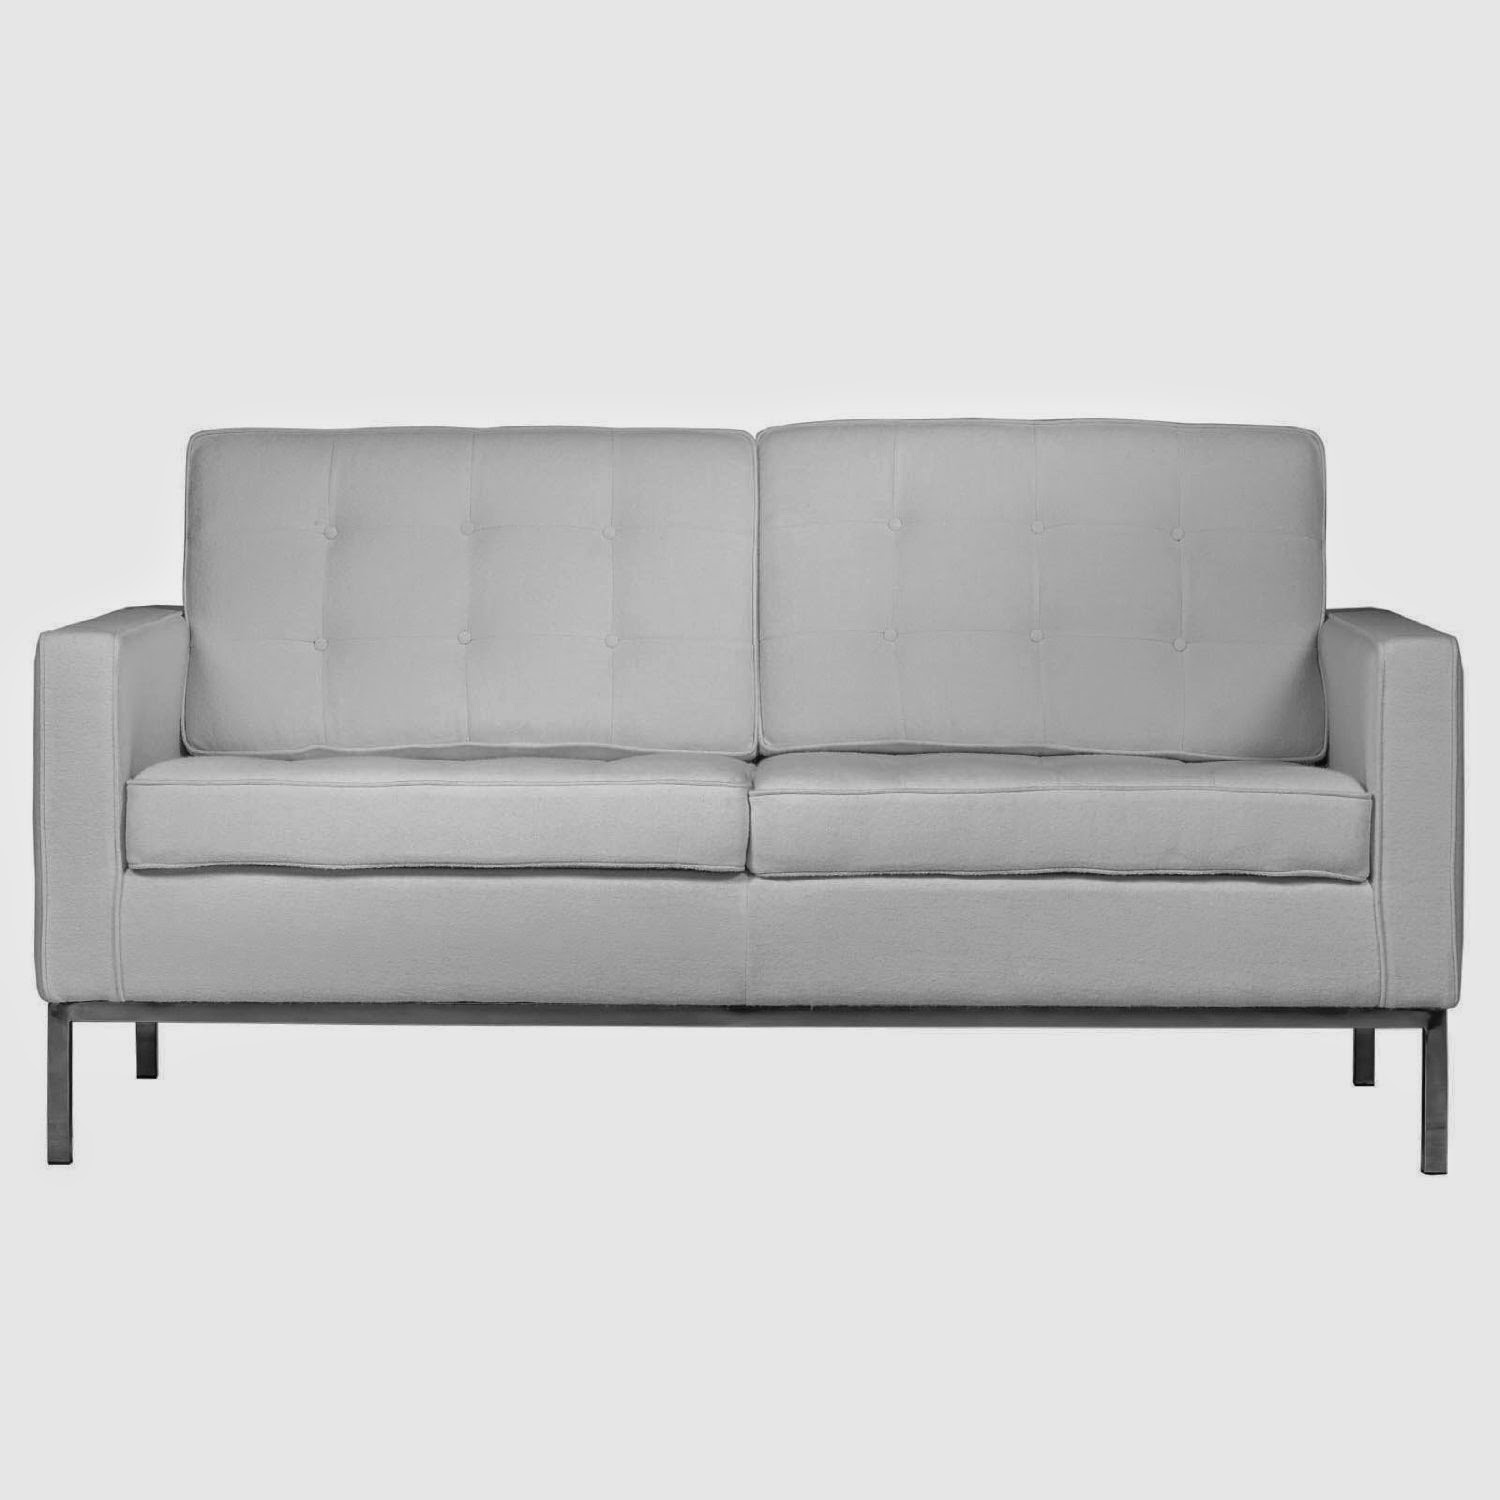 Most Comfortable Ikea Sofa Thrive Sofas Couches You Can Sleep On Best Sleeper And Mattress